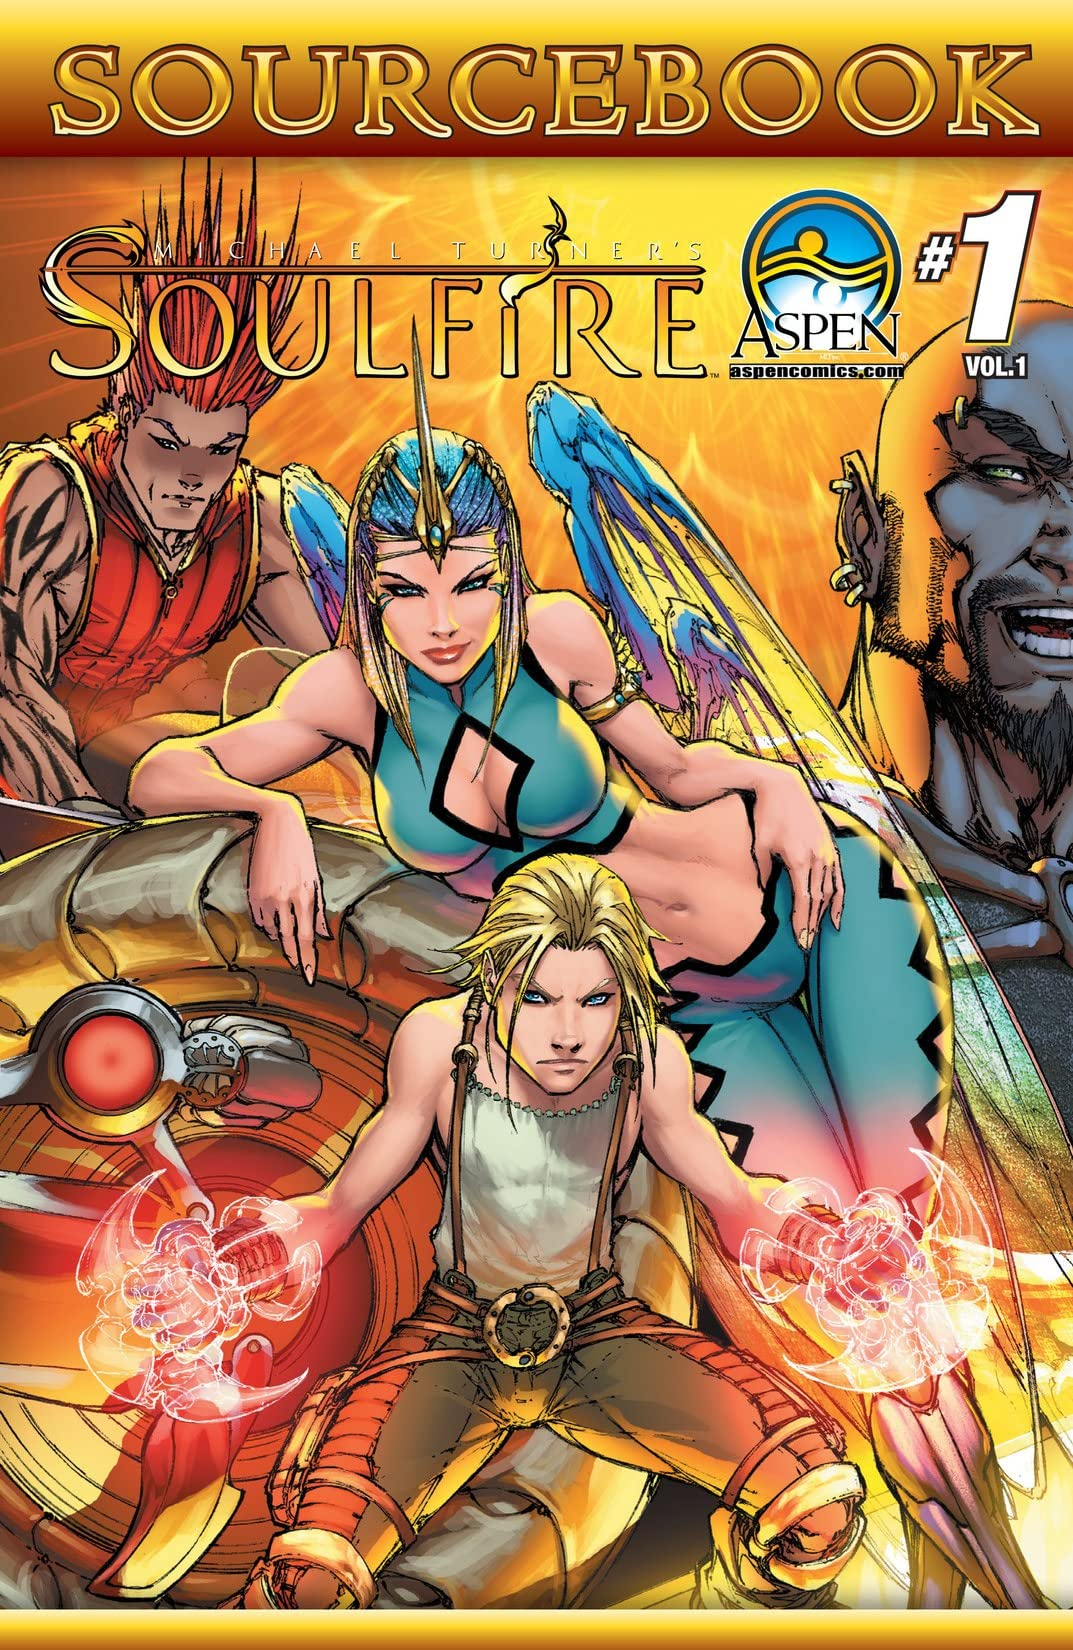 The Soulfire Sourcebook #1